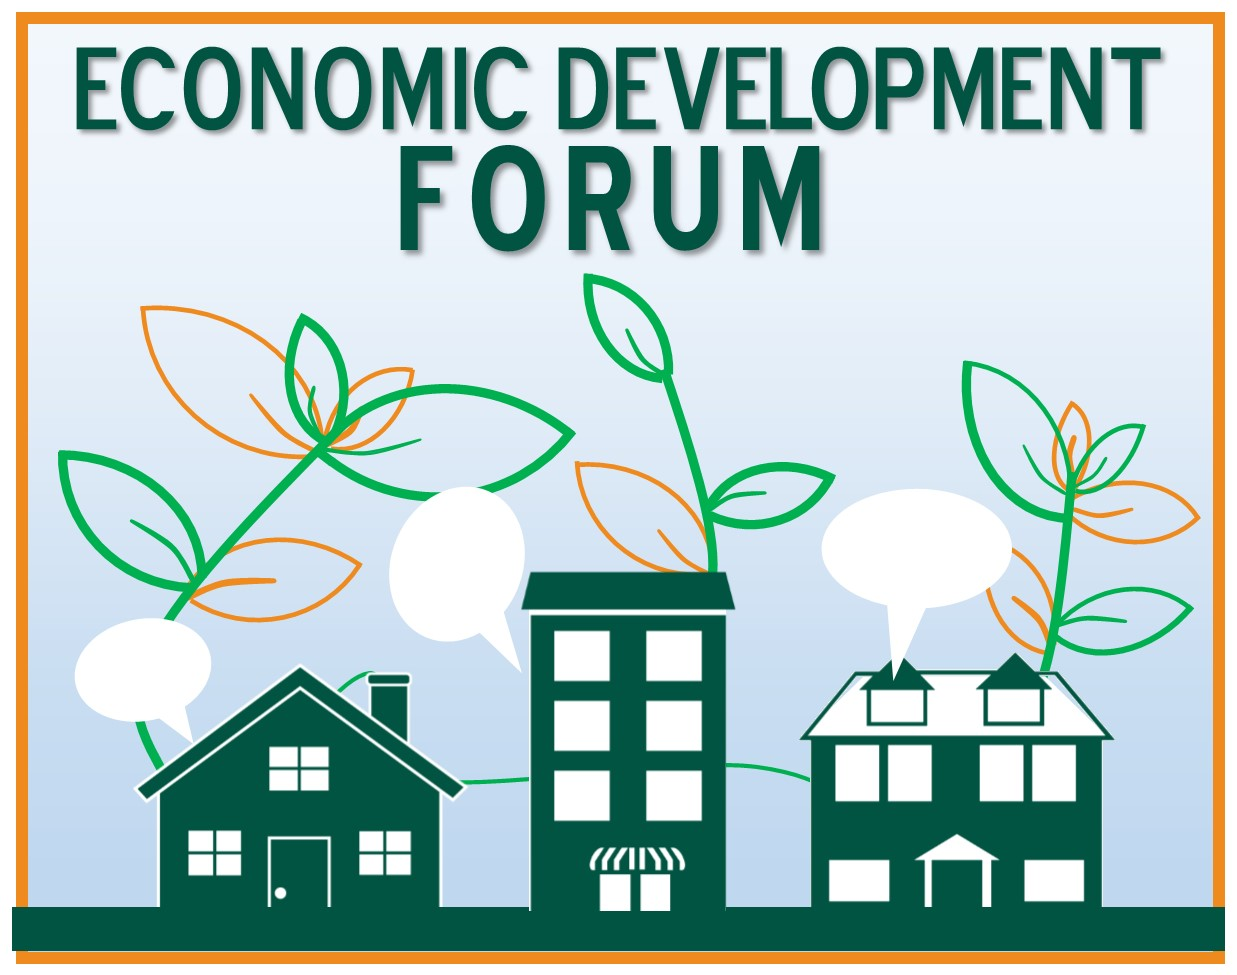 Economic Development Forum Logo, links to Economic Development Forum Page